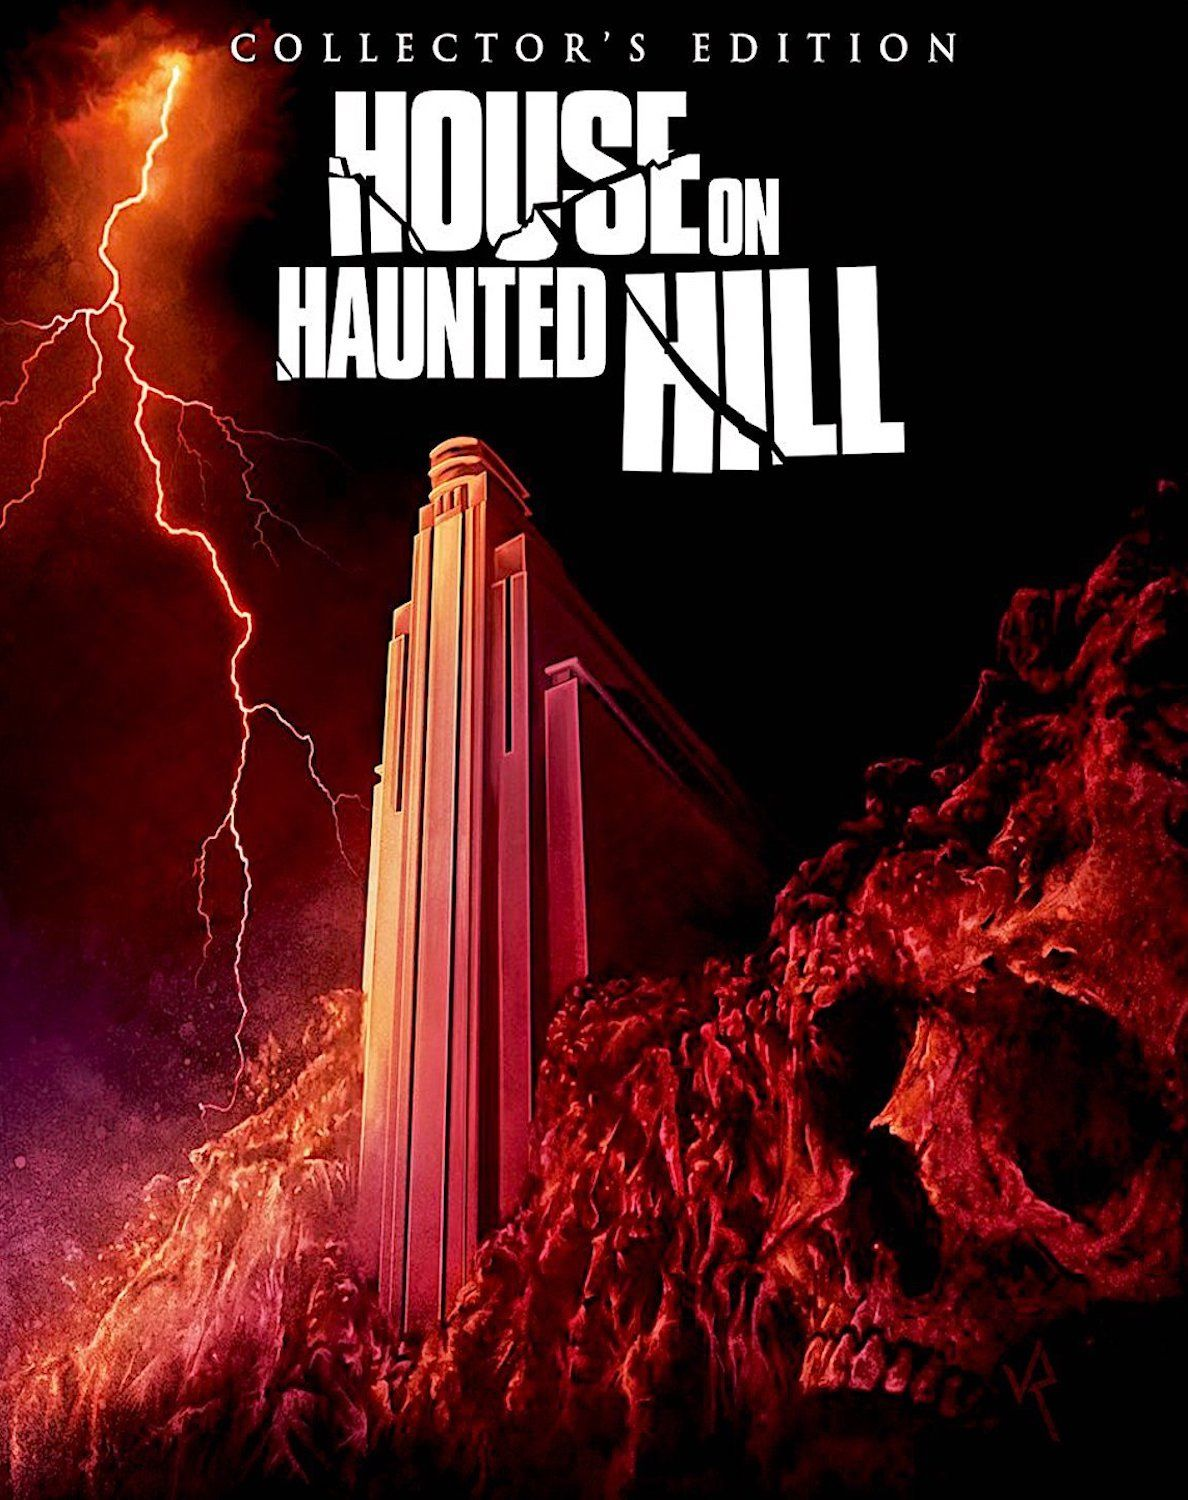 HOUSE ON HAUNTED HILL COLLECTOR'S EDITION BLU-RAY SLIPCOVER